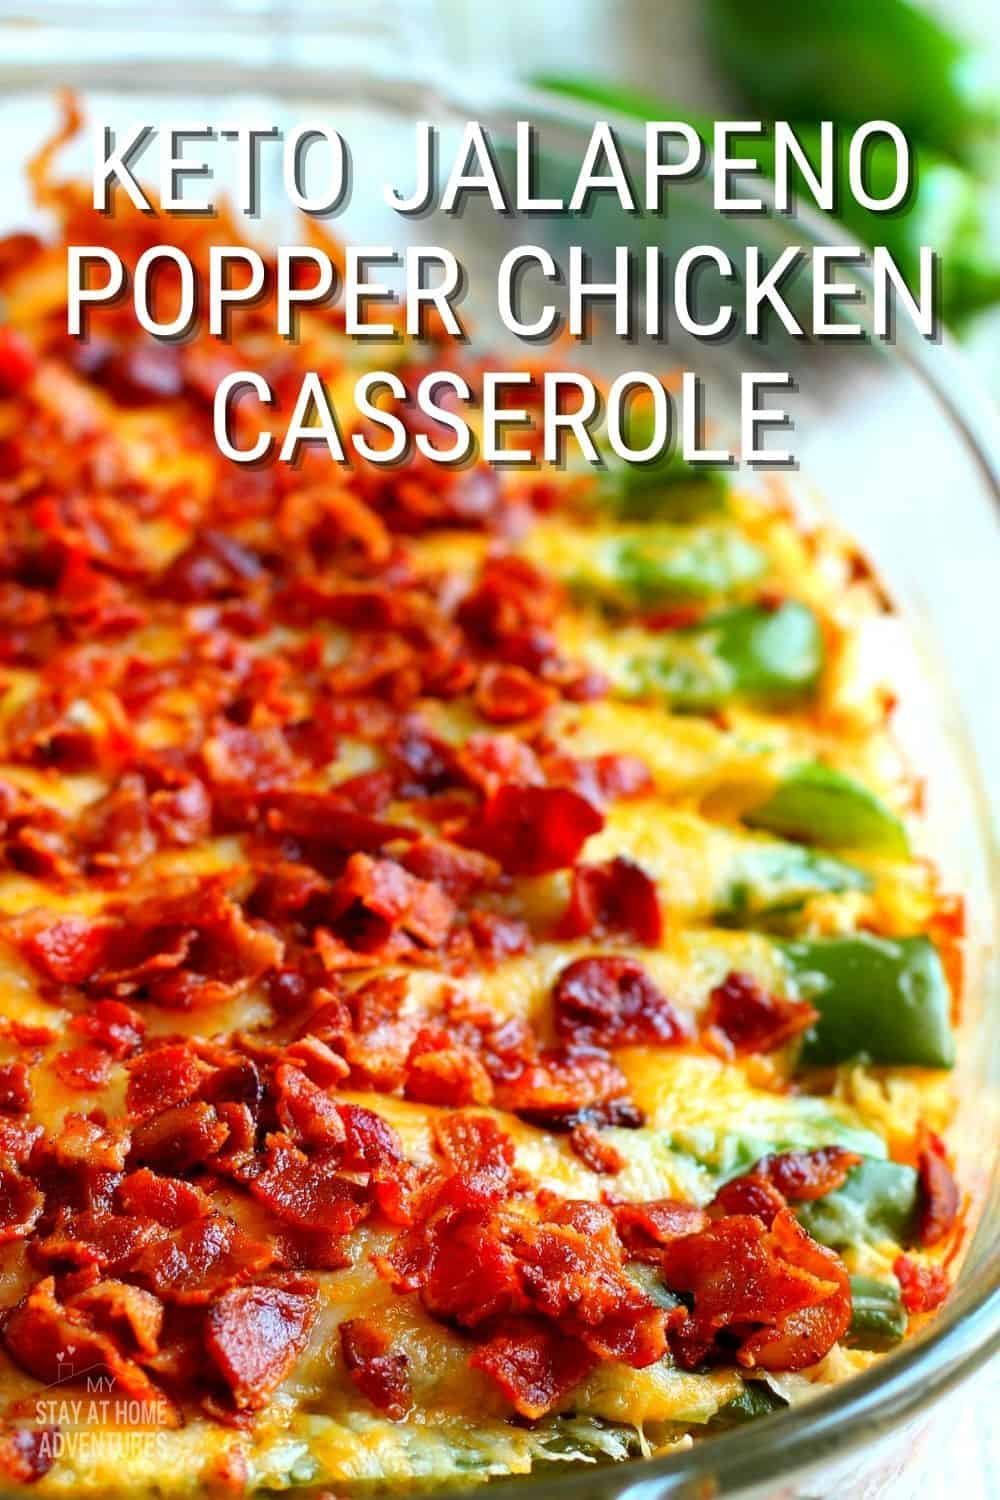 This Keto Jalapeno Popper Chicken Casserole is so creamy and packed with flavorful ingredients yet it contains very low in carbohydrates. via @mystayathome